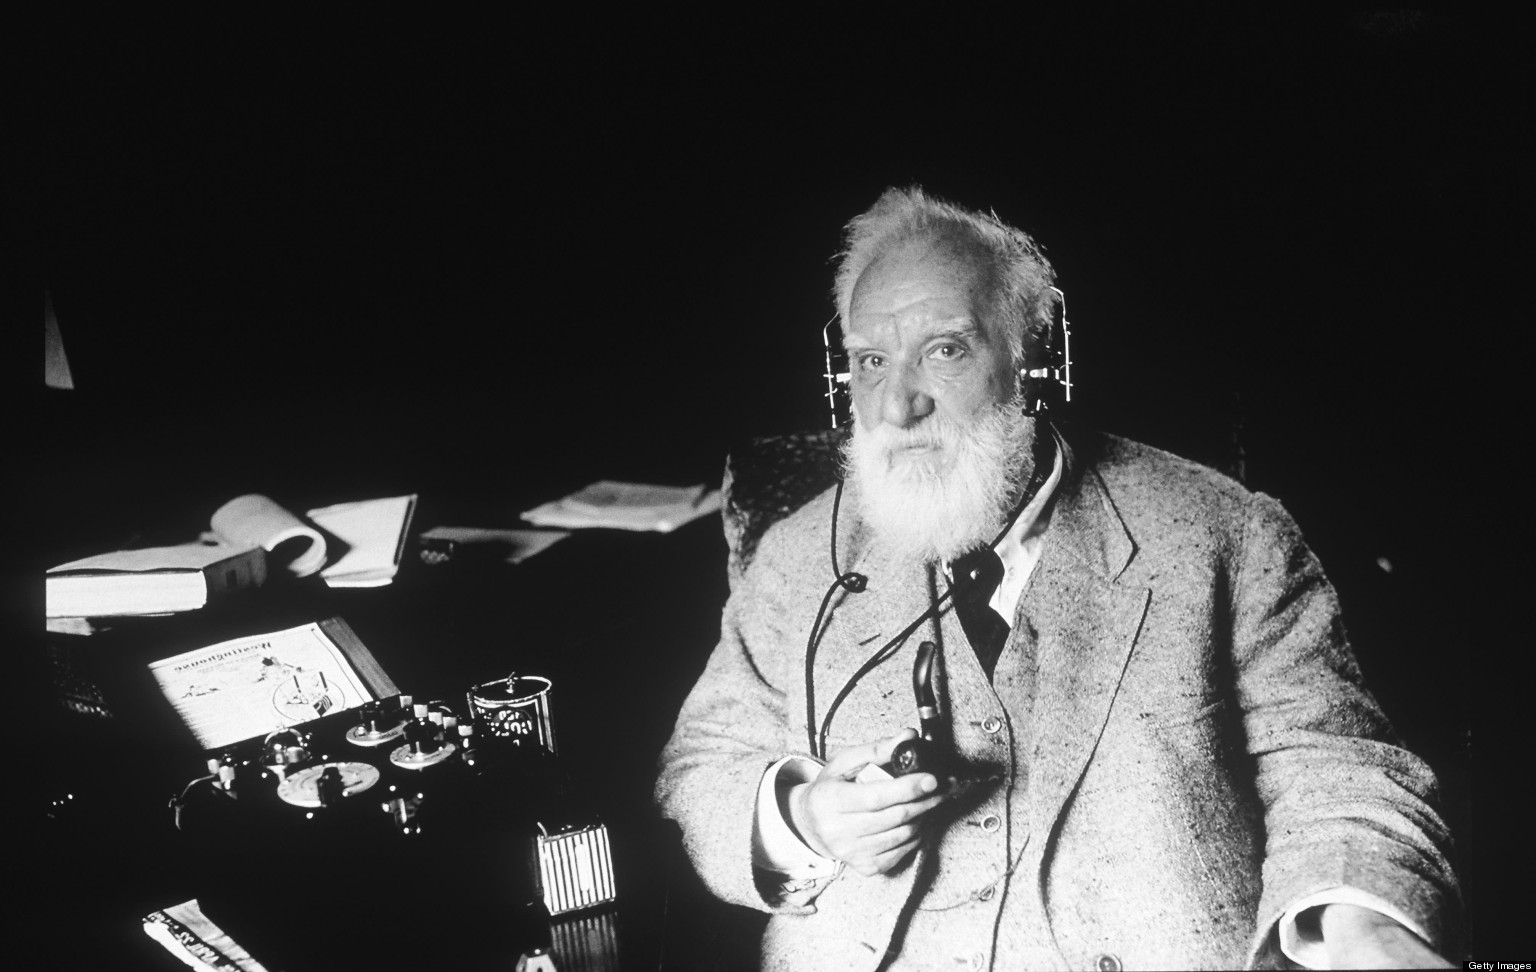 a biography of alexander graham bell Biography: alexander graham bell is most famous for his invention of the telephone he first became interested in the science of sound because both his mother and .